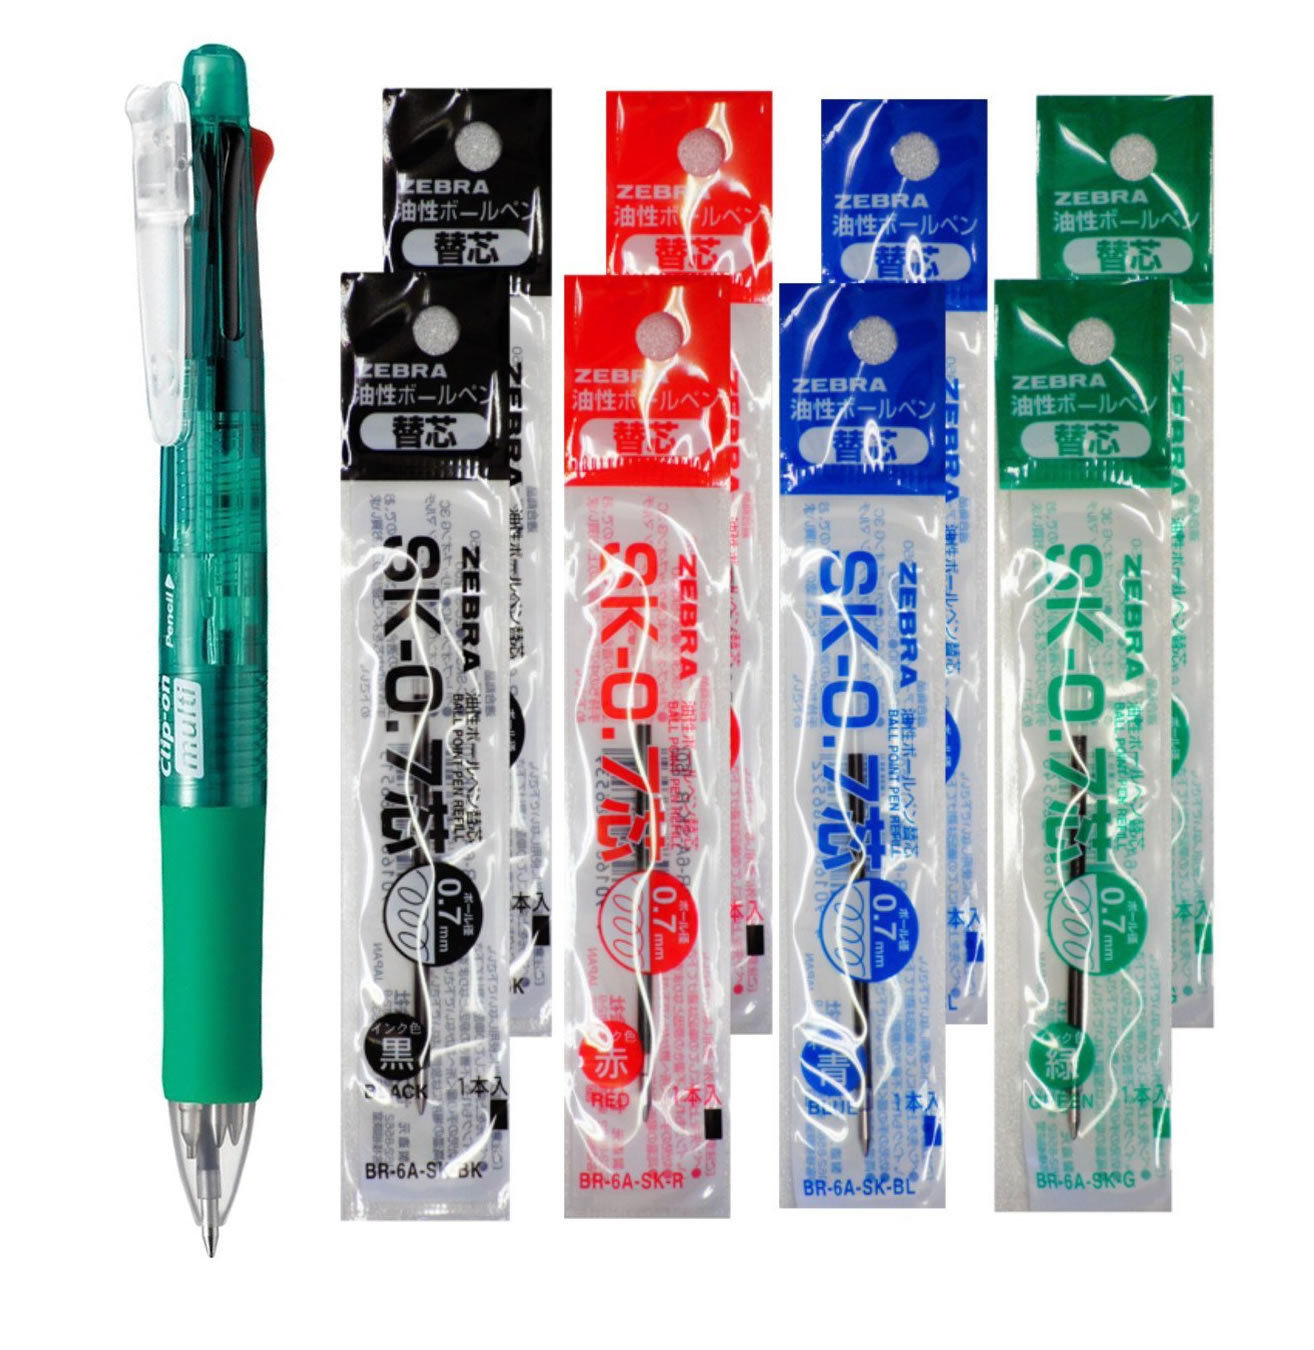 Zebra B4SA1 Green Pen+SK-0.7 Black,Blue,Red,Green 0.7mm Refills (8pc